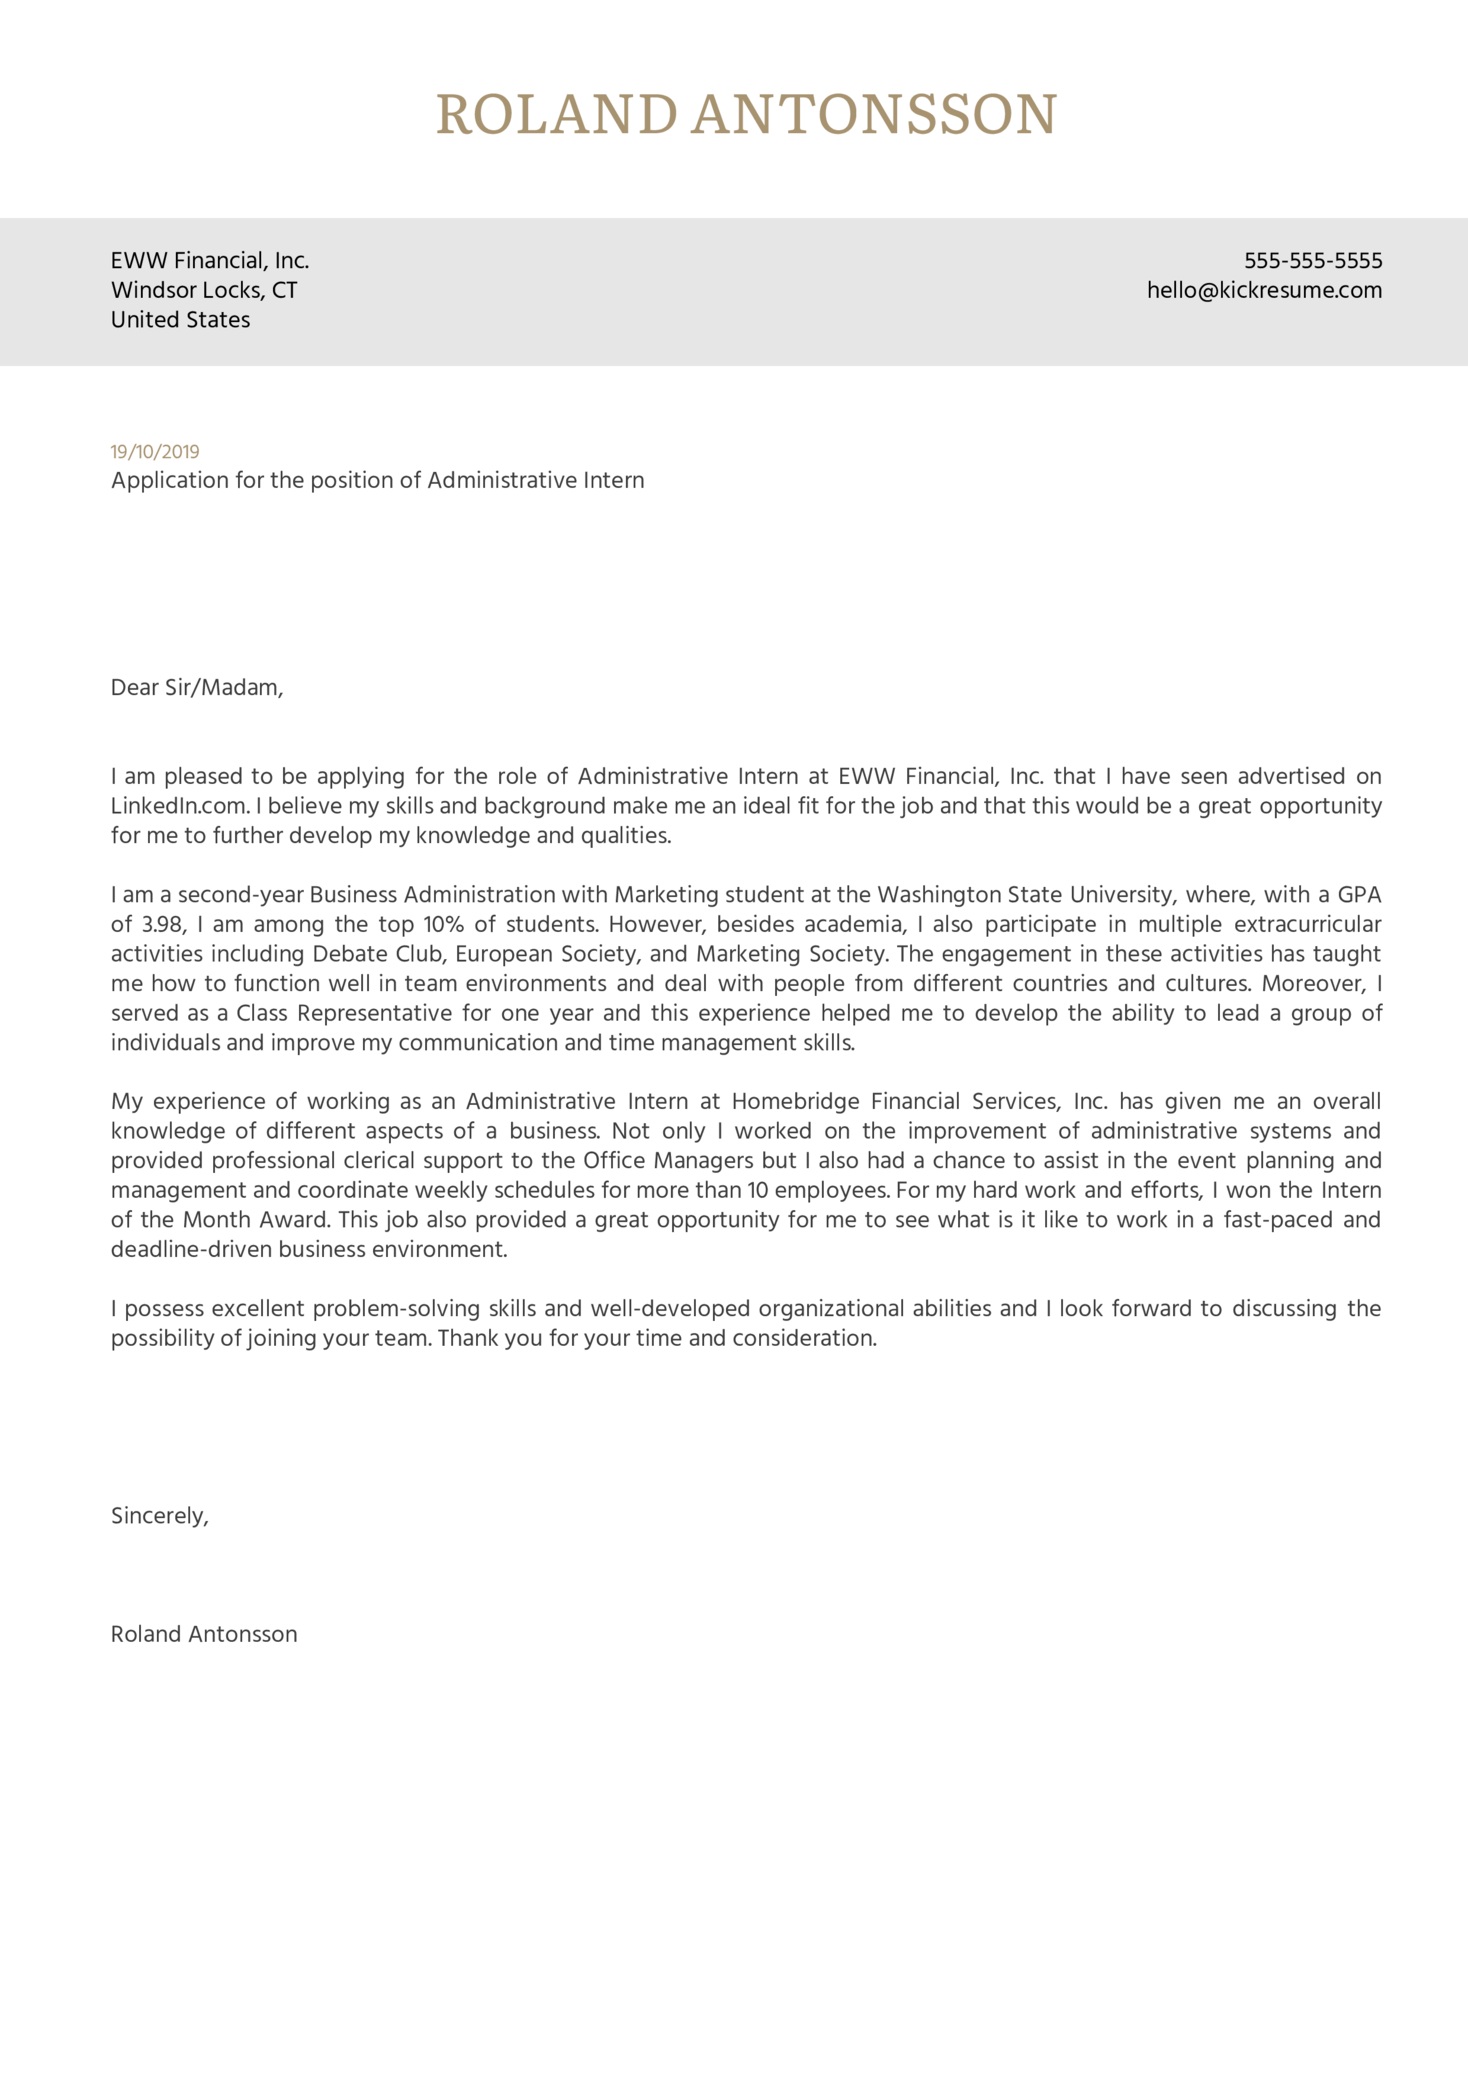 Administrative Intern Cover Letter Example